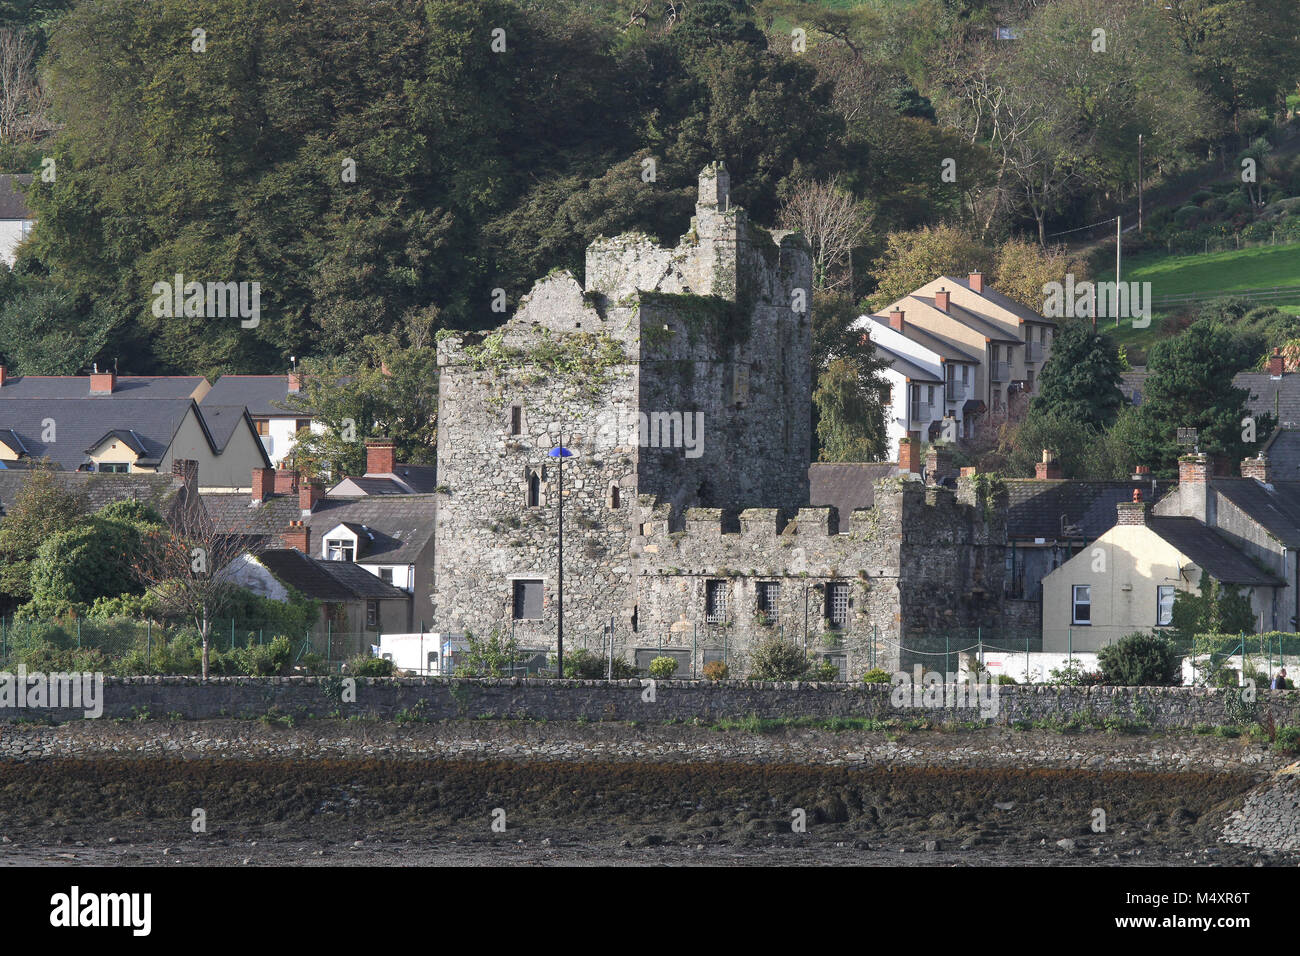 Taaffes Castle a fortified tower-house or merchants house in Carlingford, County Louth, Ireland. - Stock Image